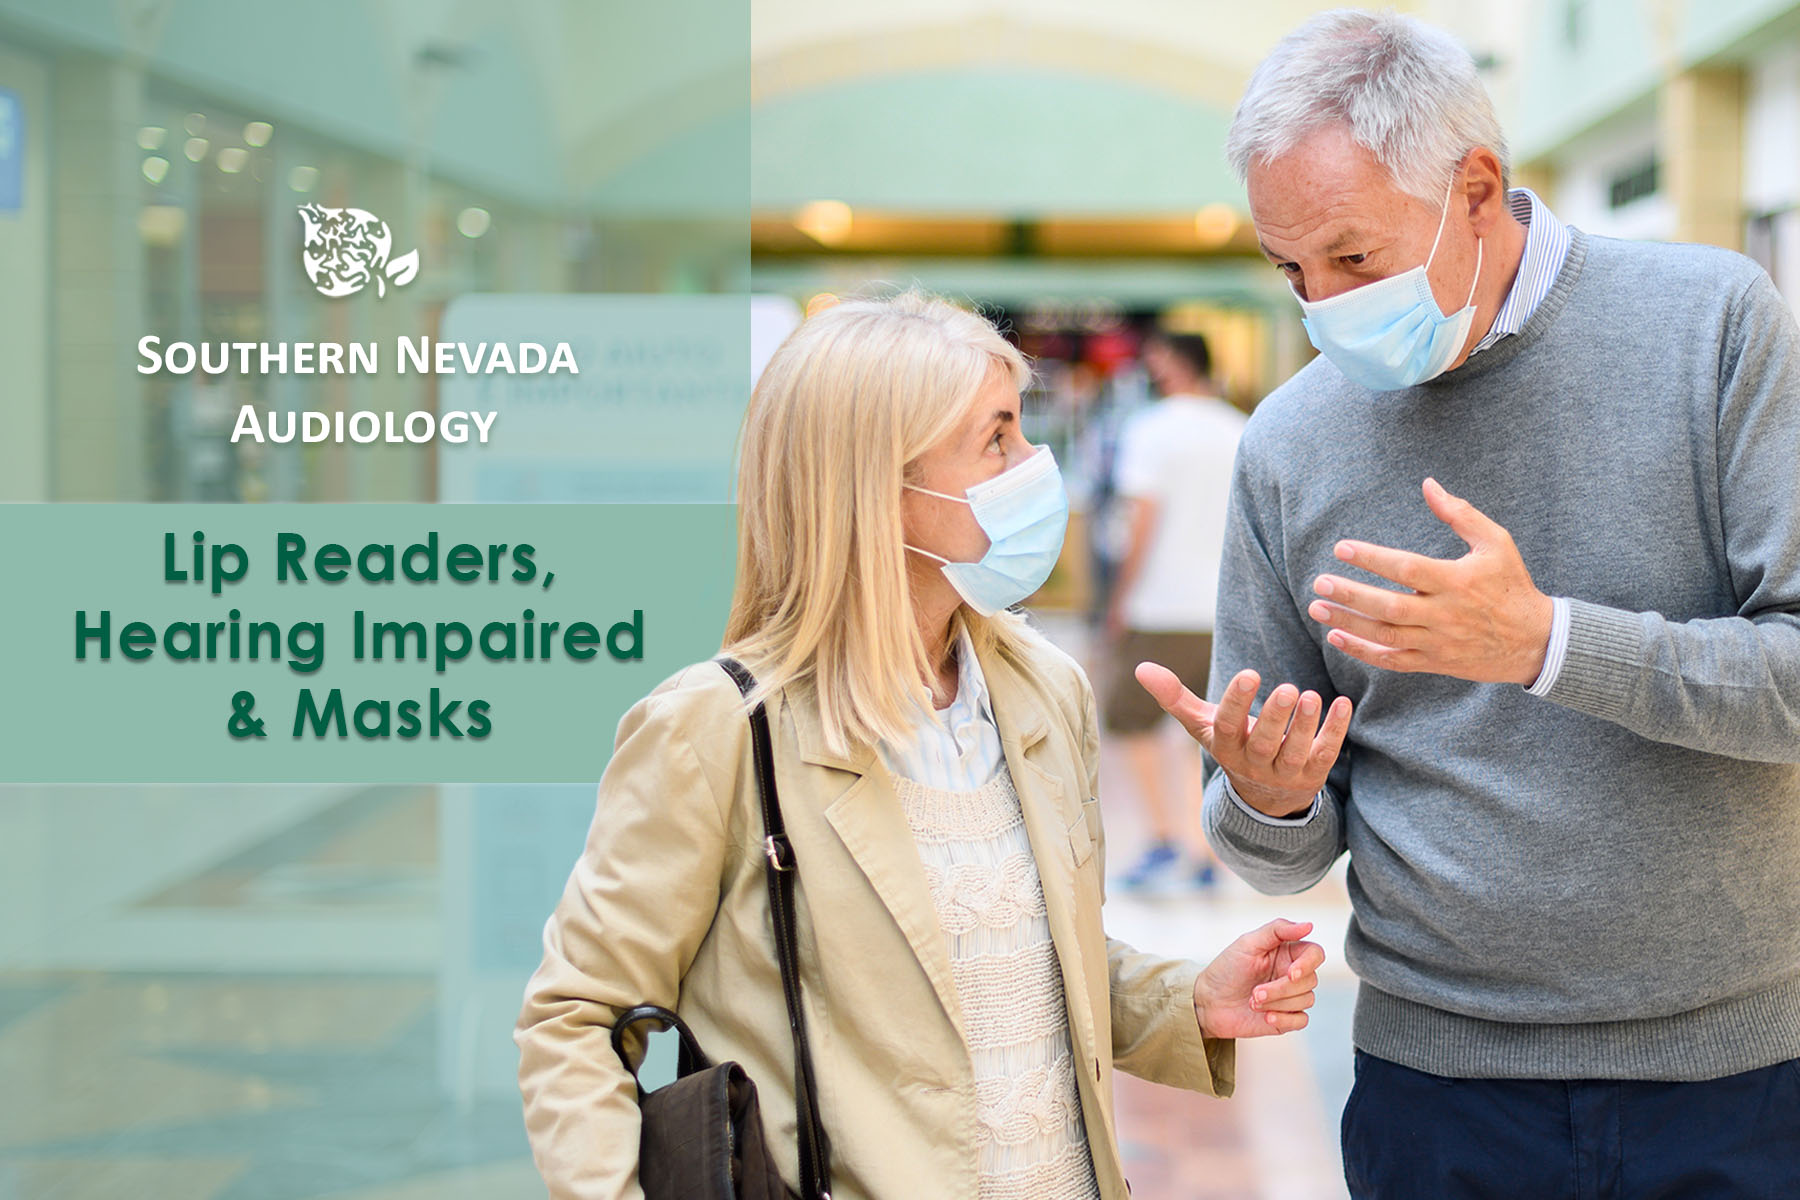 Lip Readers, Hearing Impaired & Masks